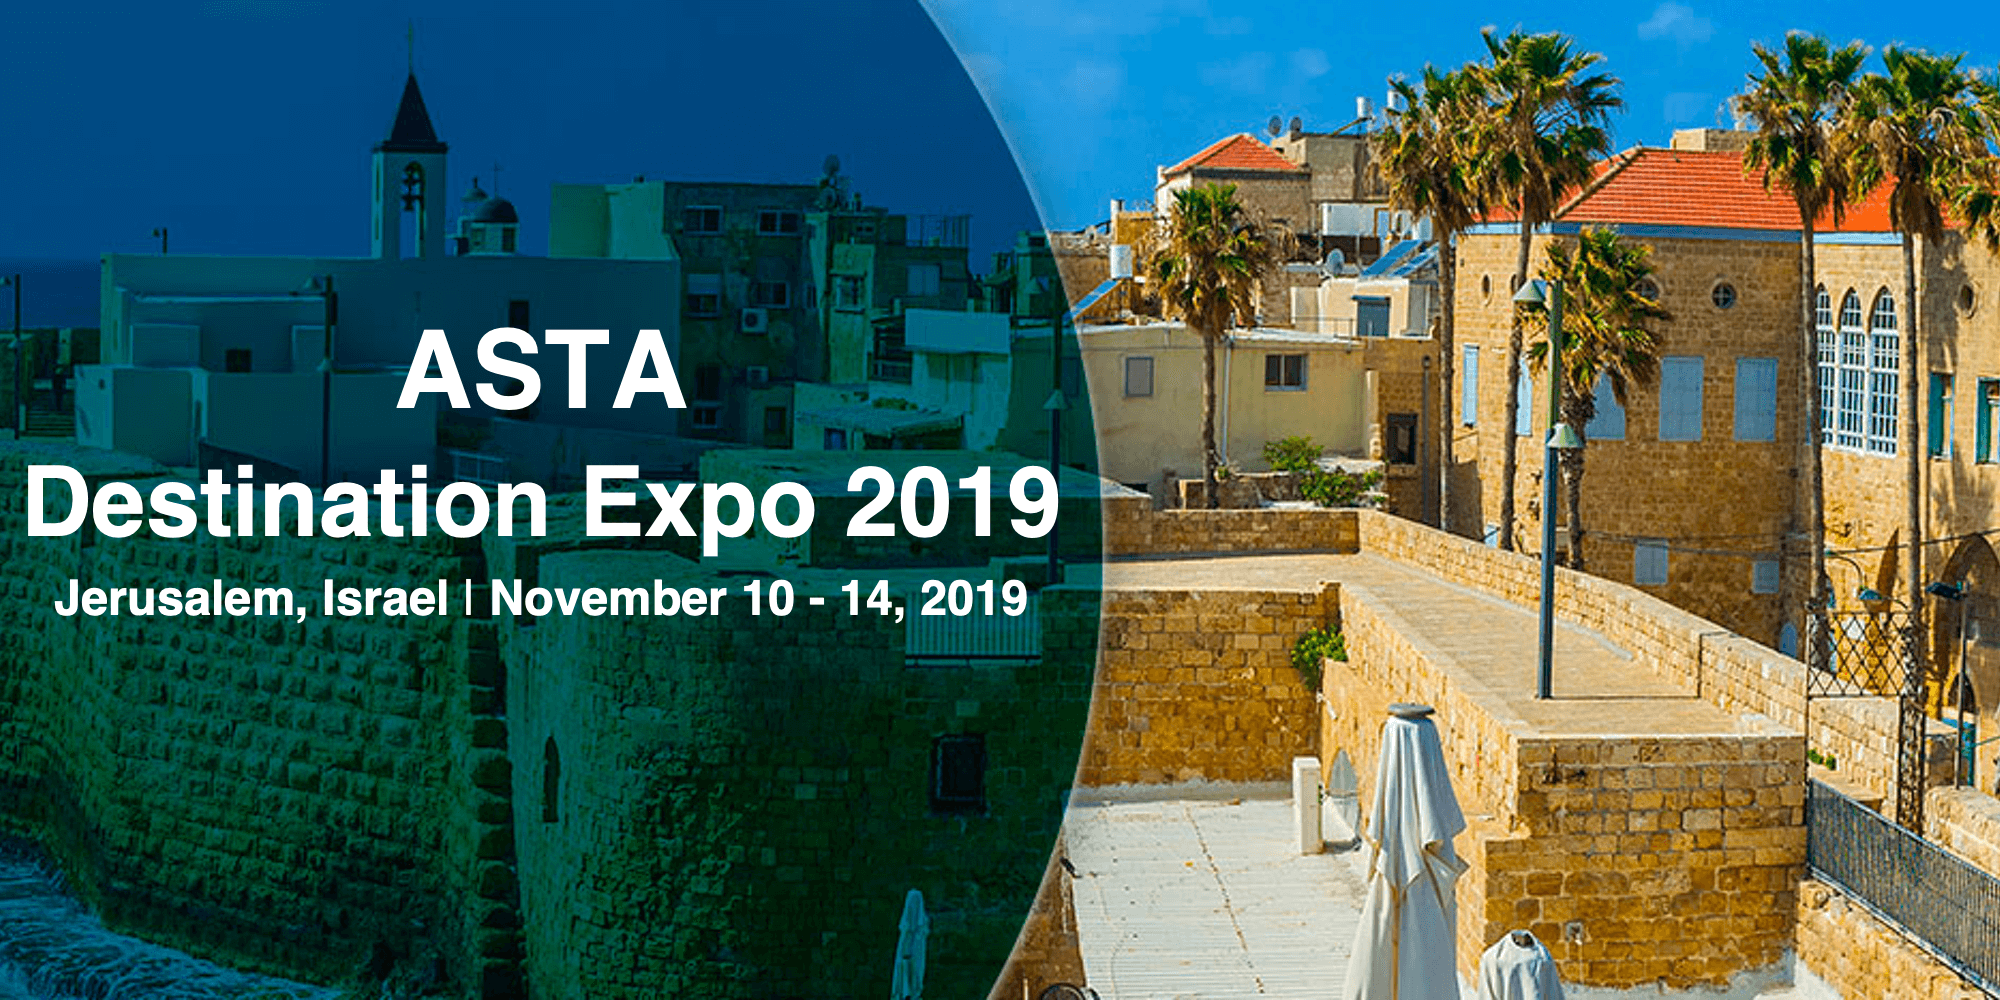 ASTA Destination Expo 2019